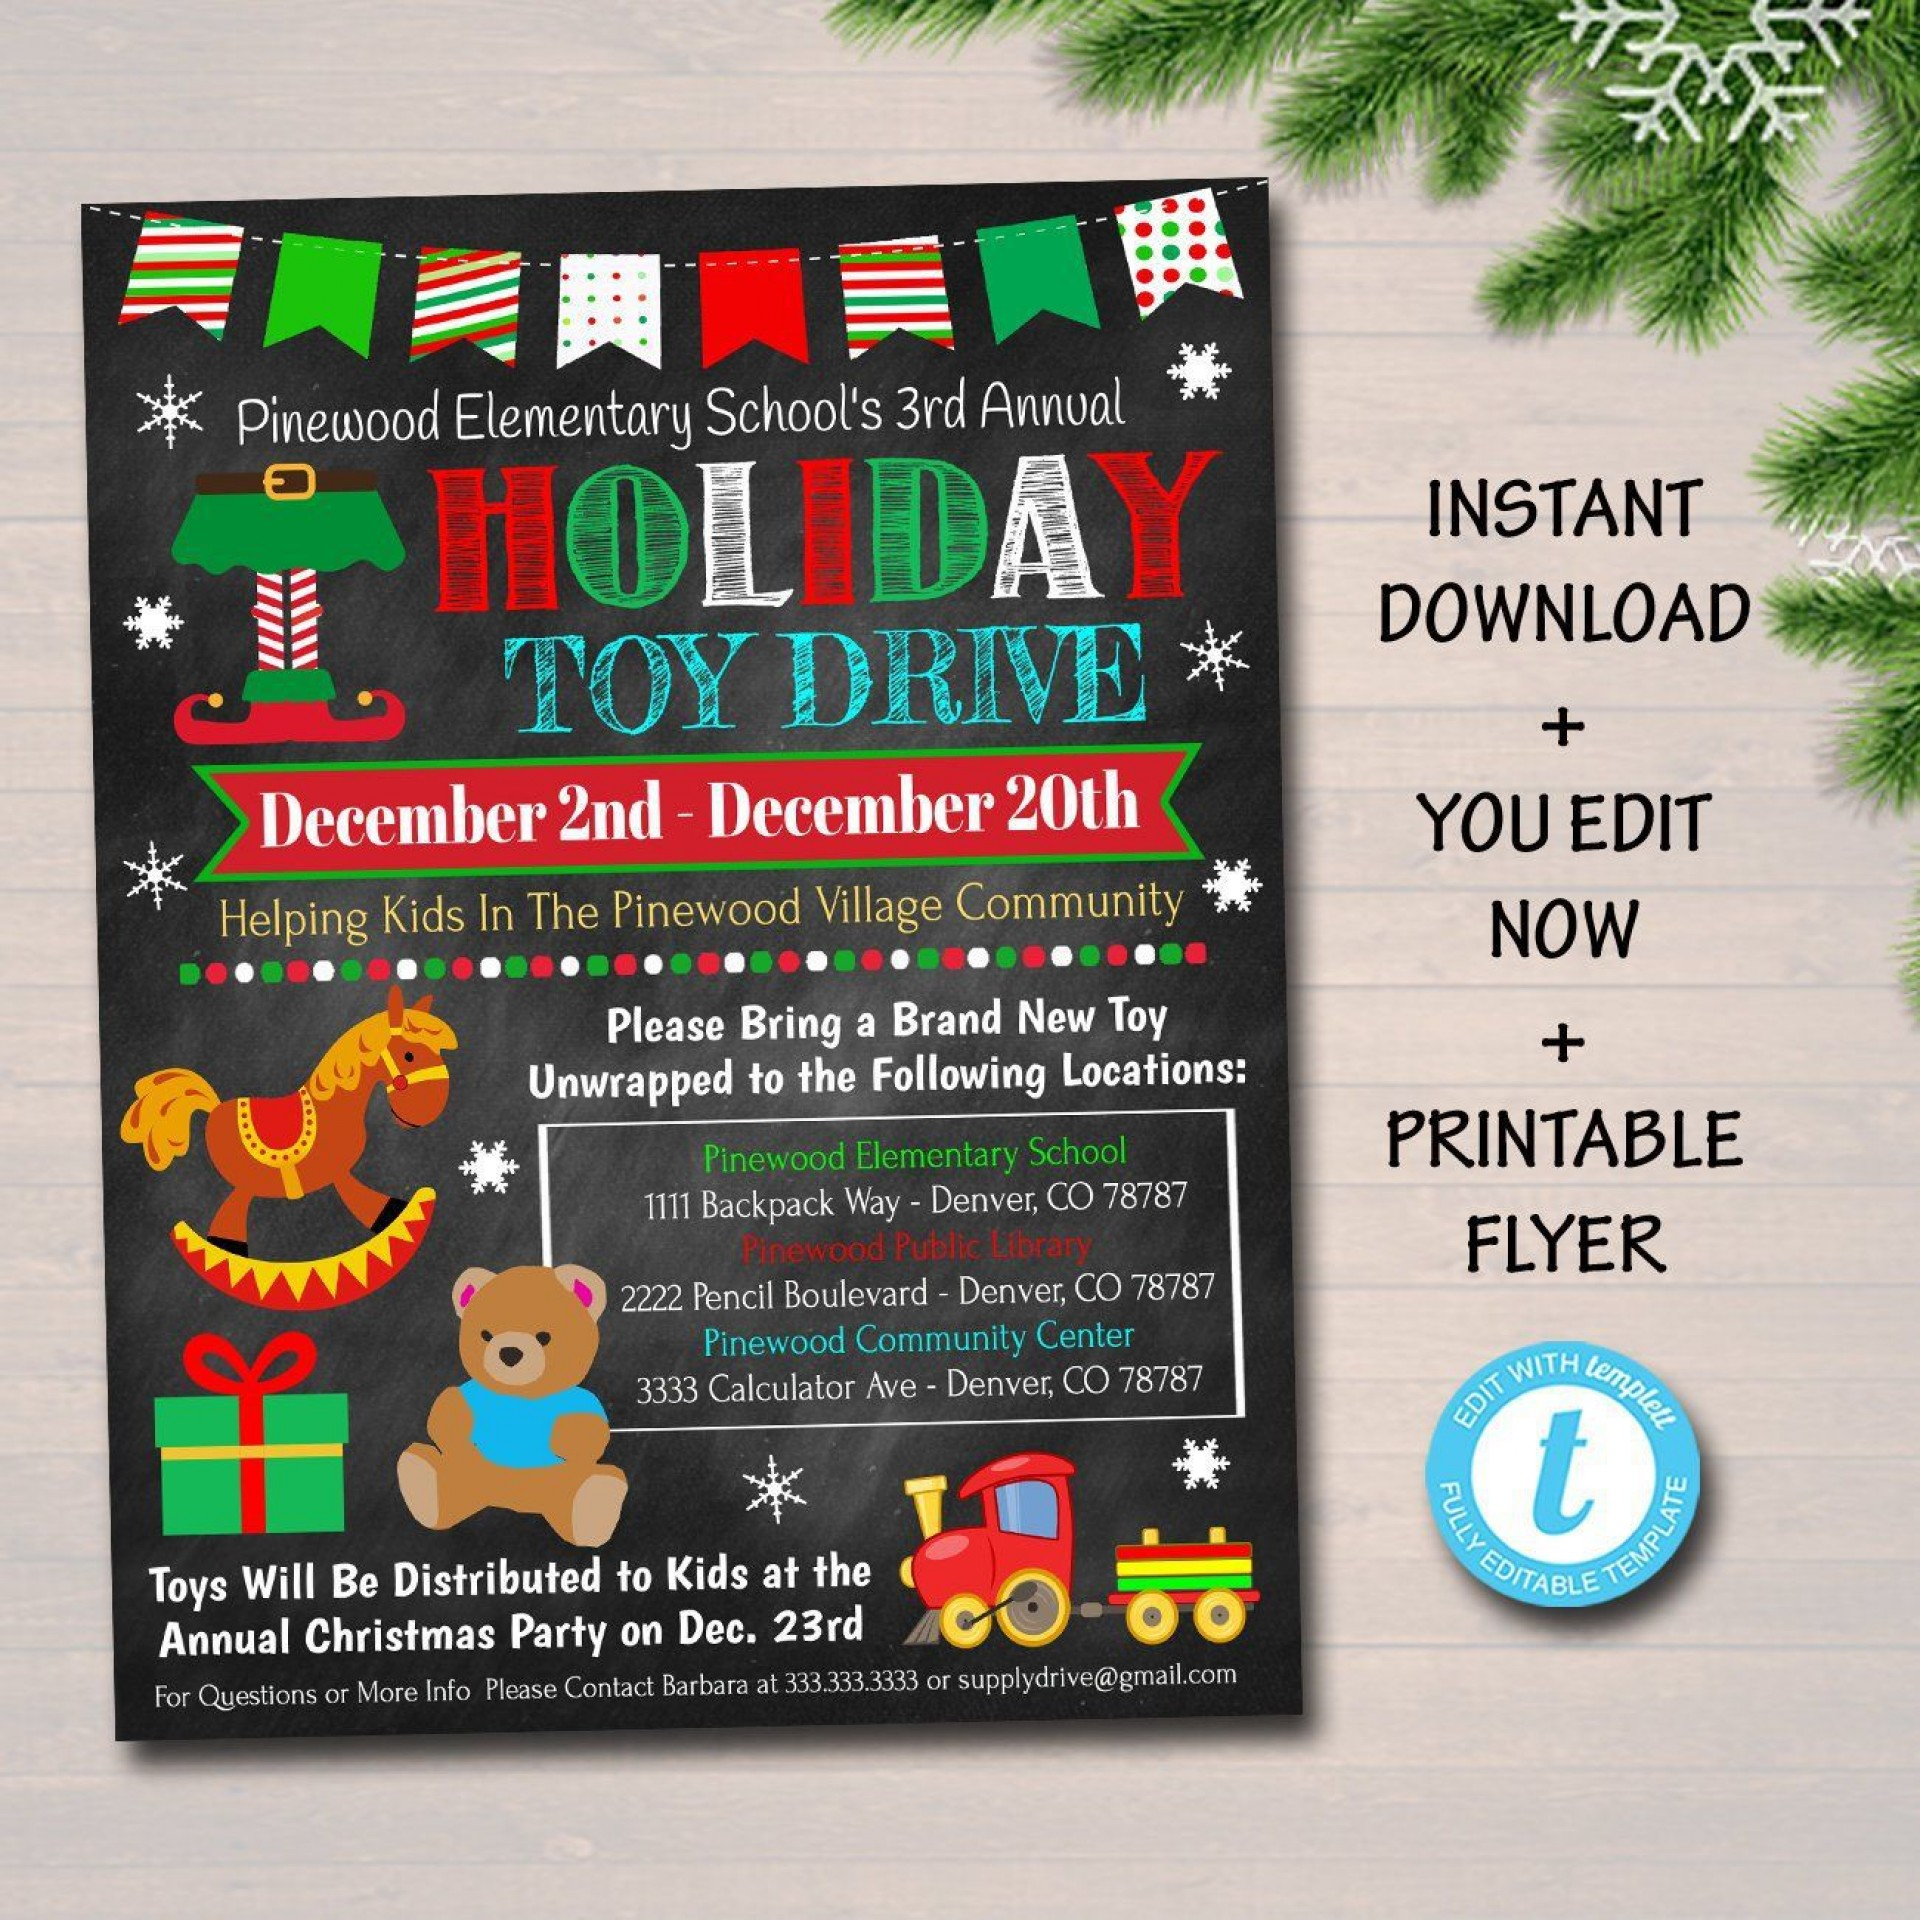 007 Awesome Toy Drive Flyer Template Sample  Holiday Download Free Word1920